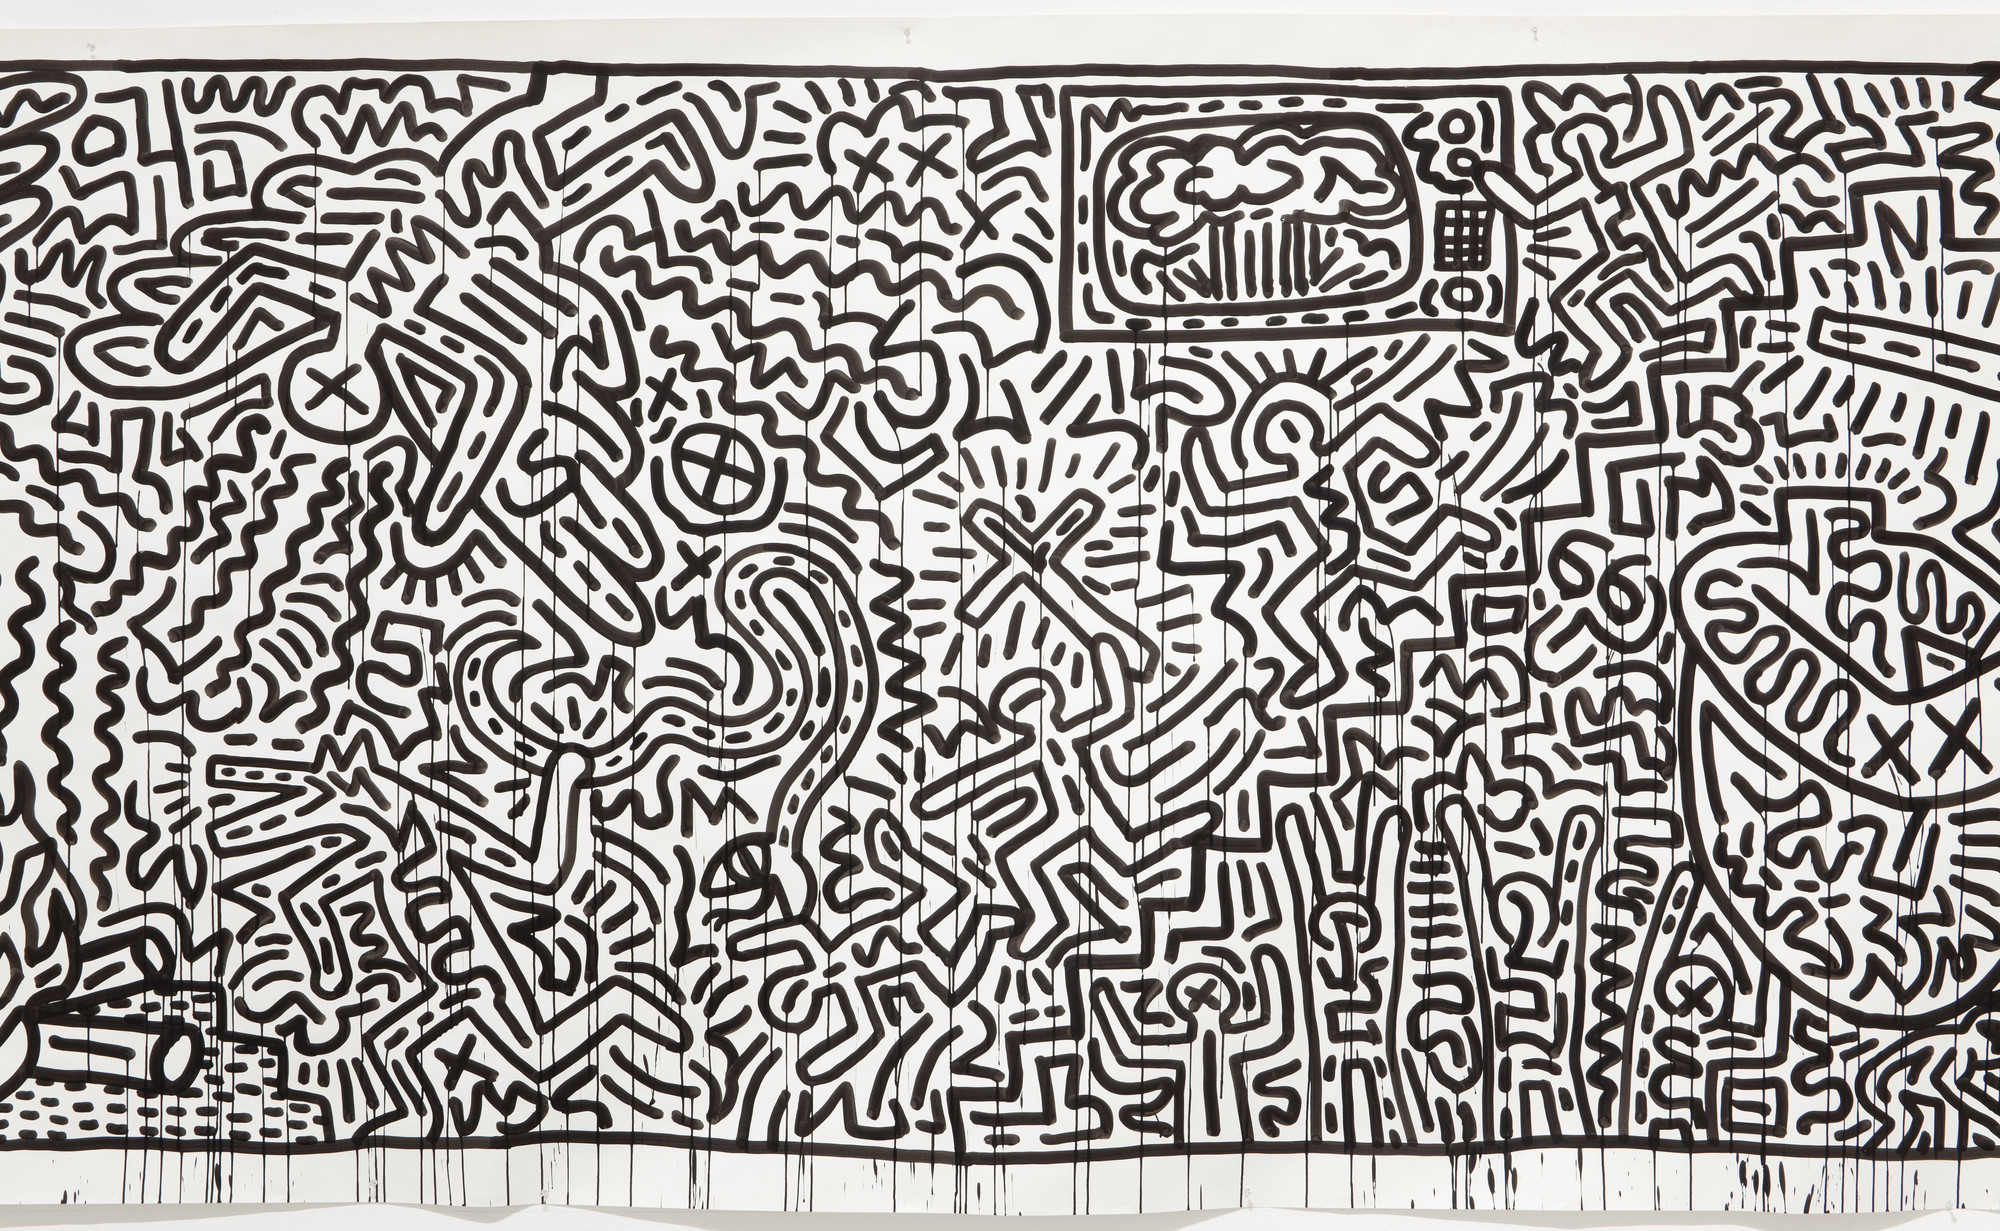 Keith Haring. Untitled. 1982